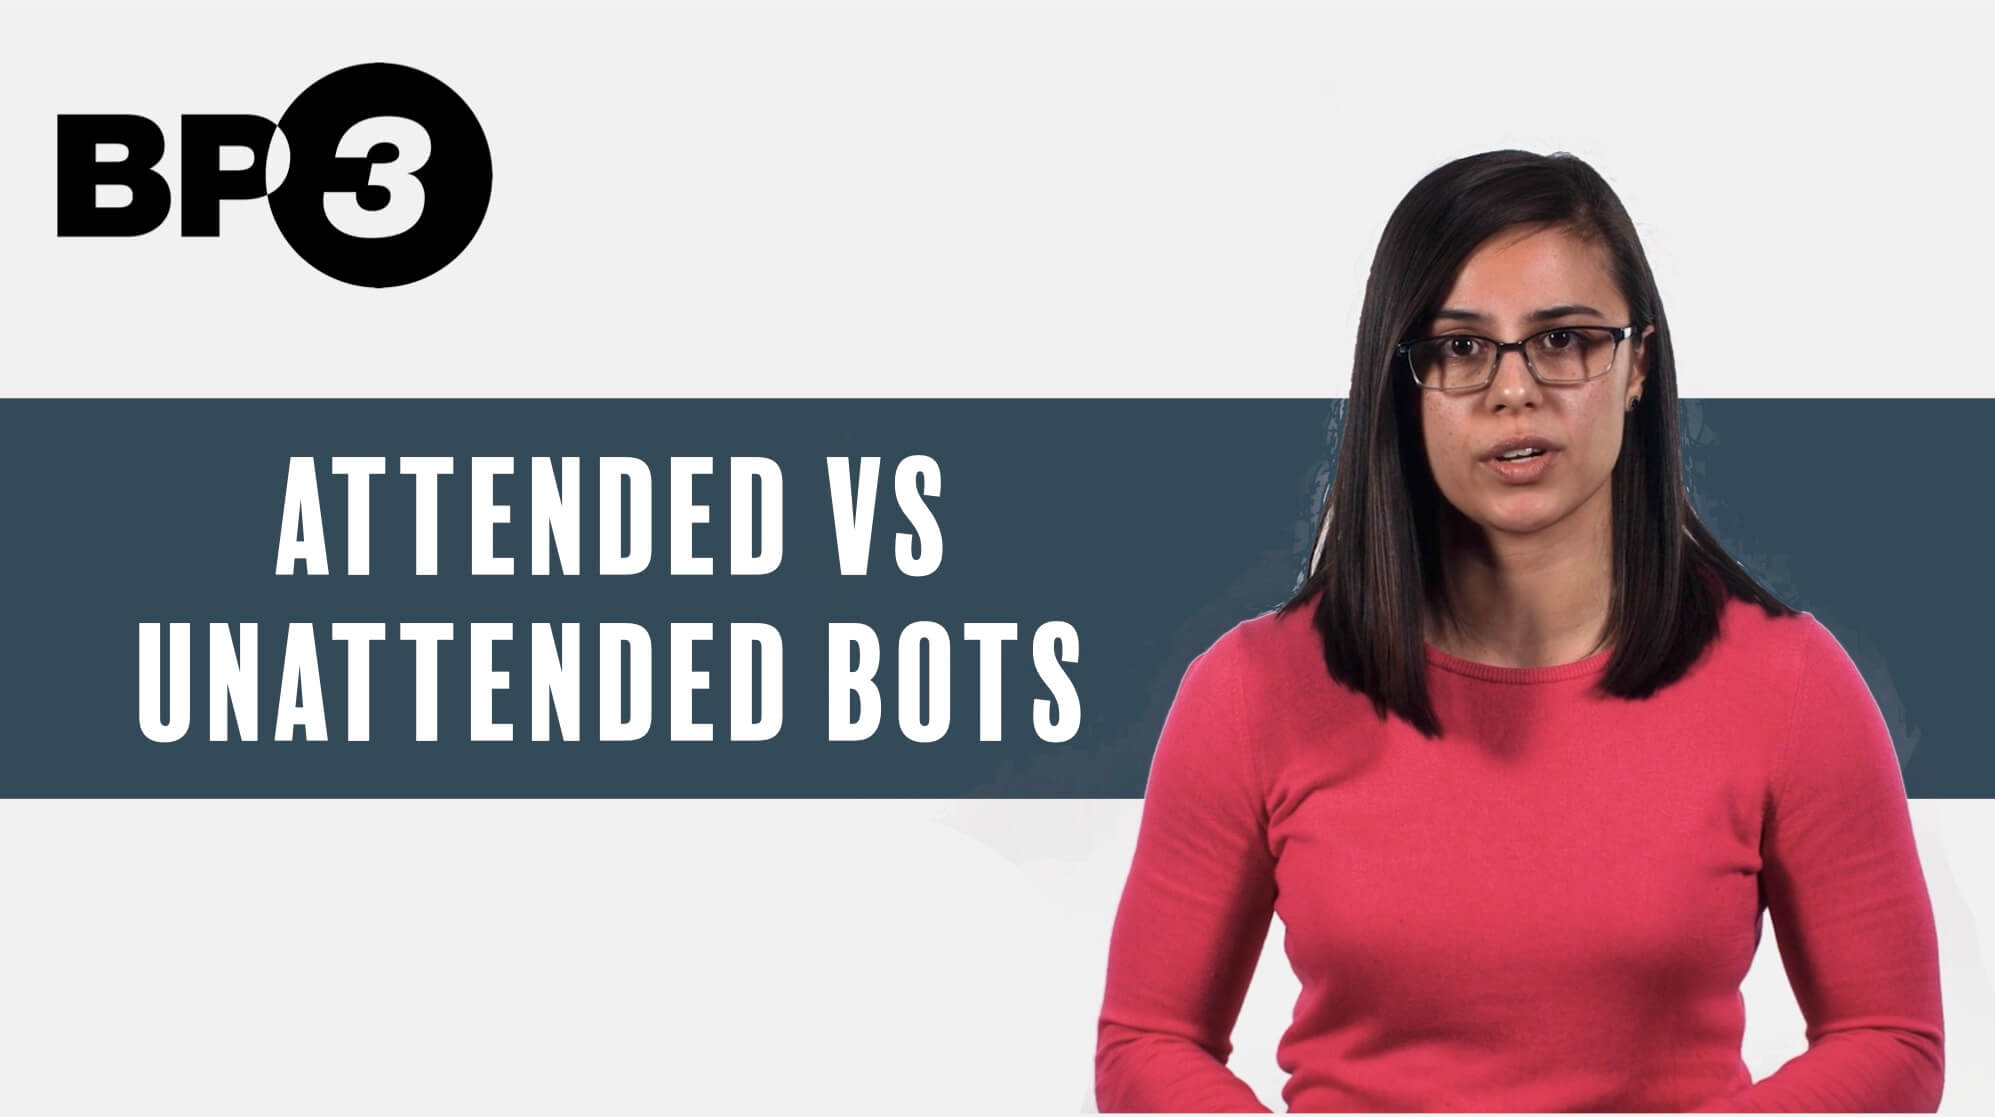 I've always thought about attended vs. unattended as much like the difference between RDA and RPA, as covered in an early video in our RPA series, back in 2018.